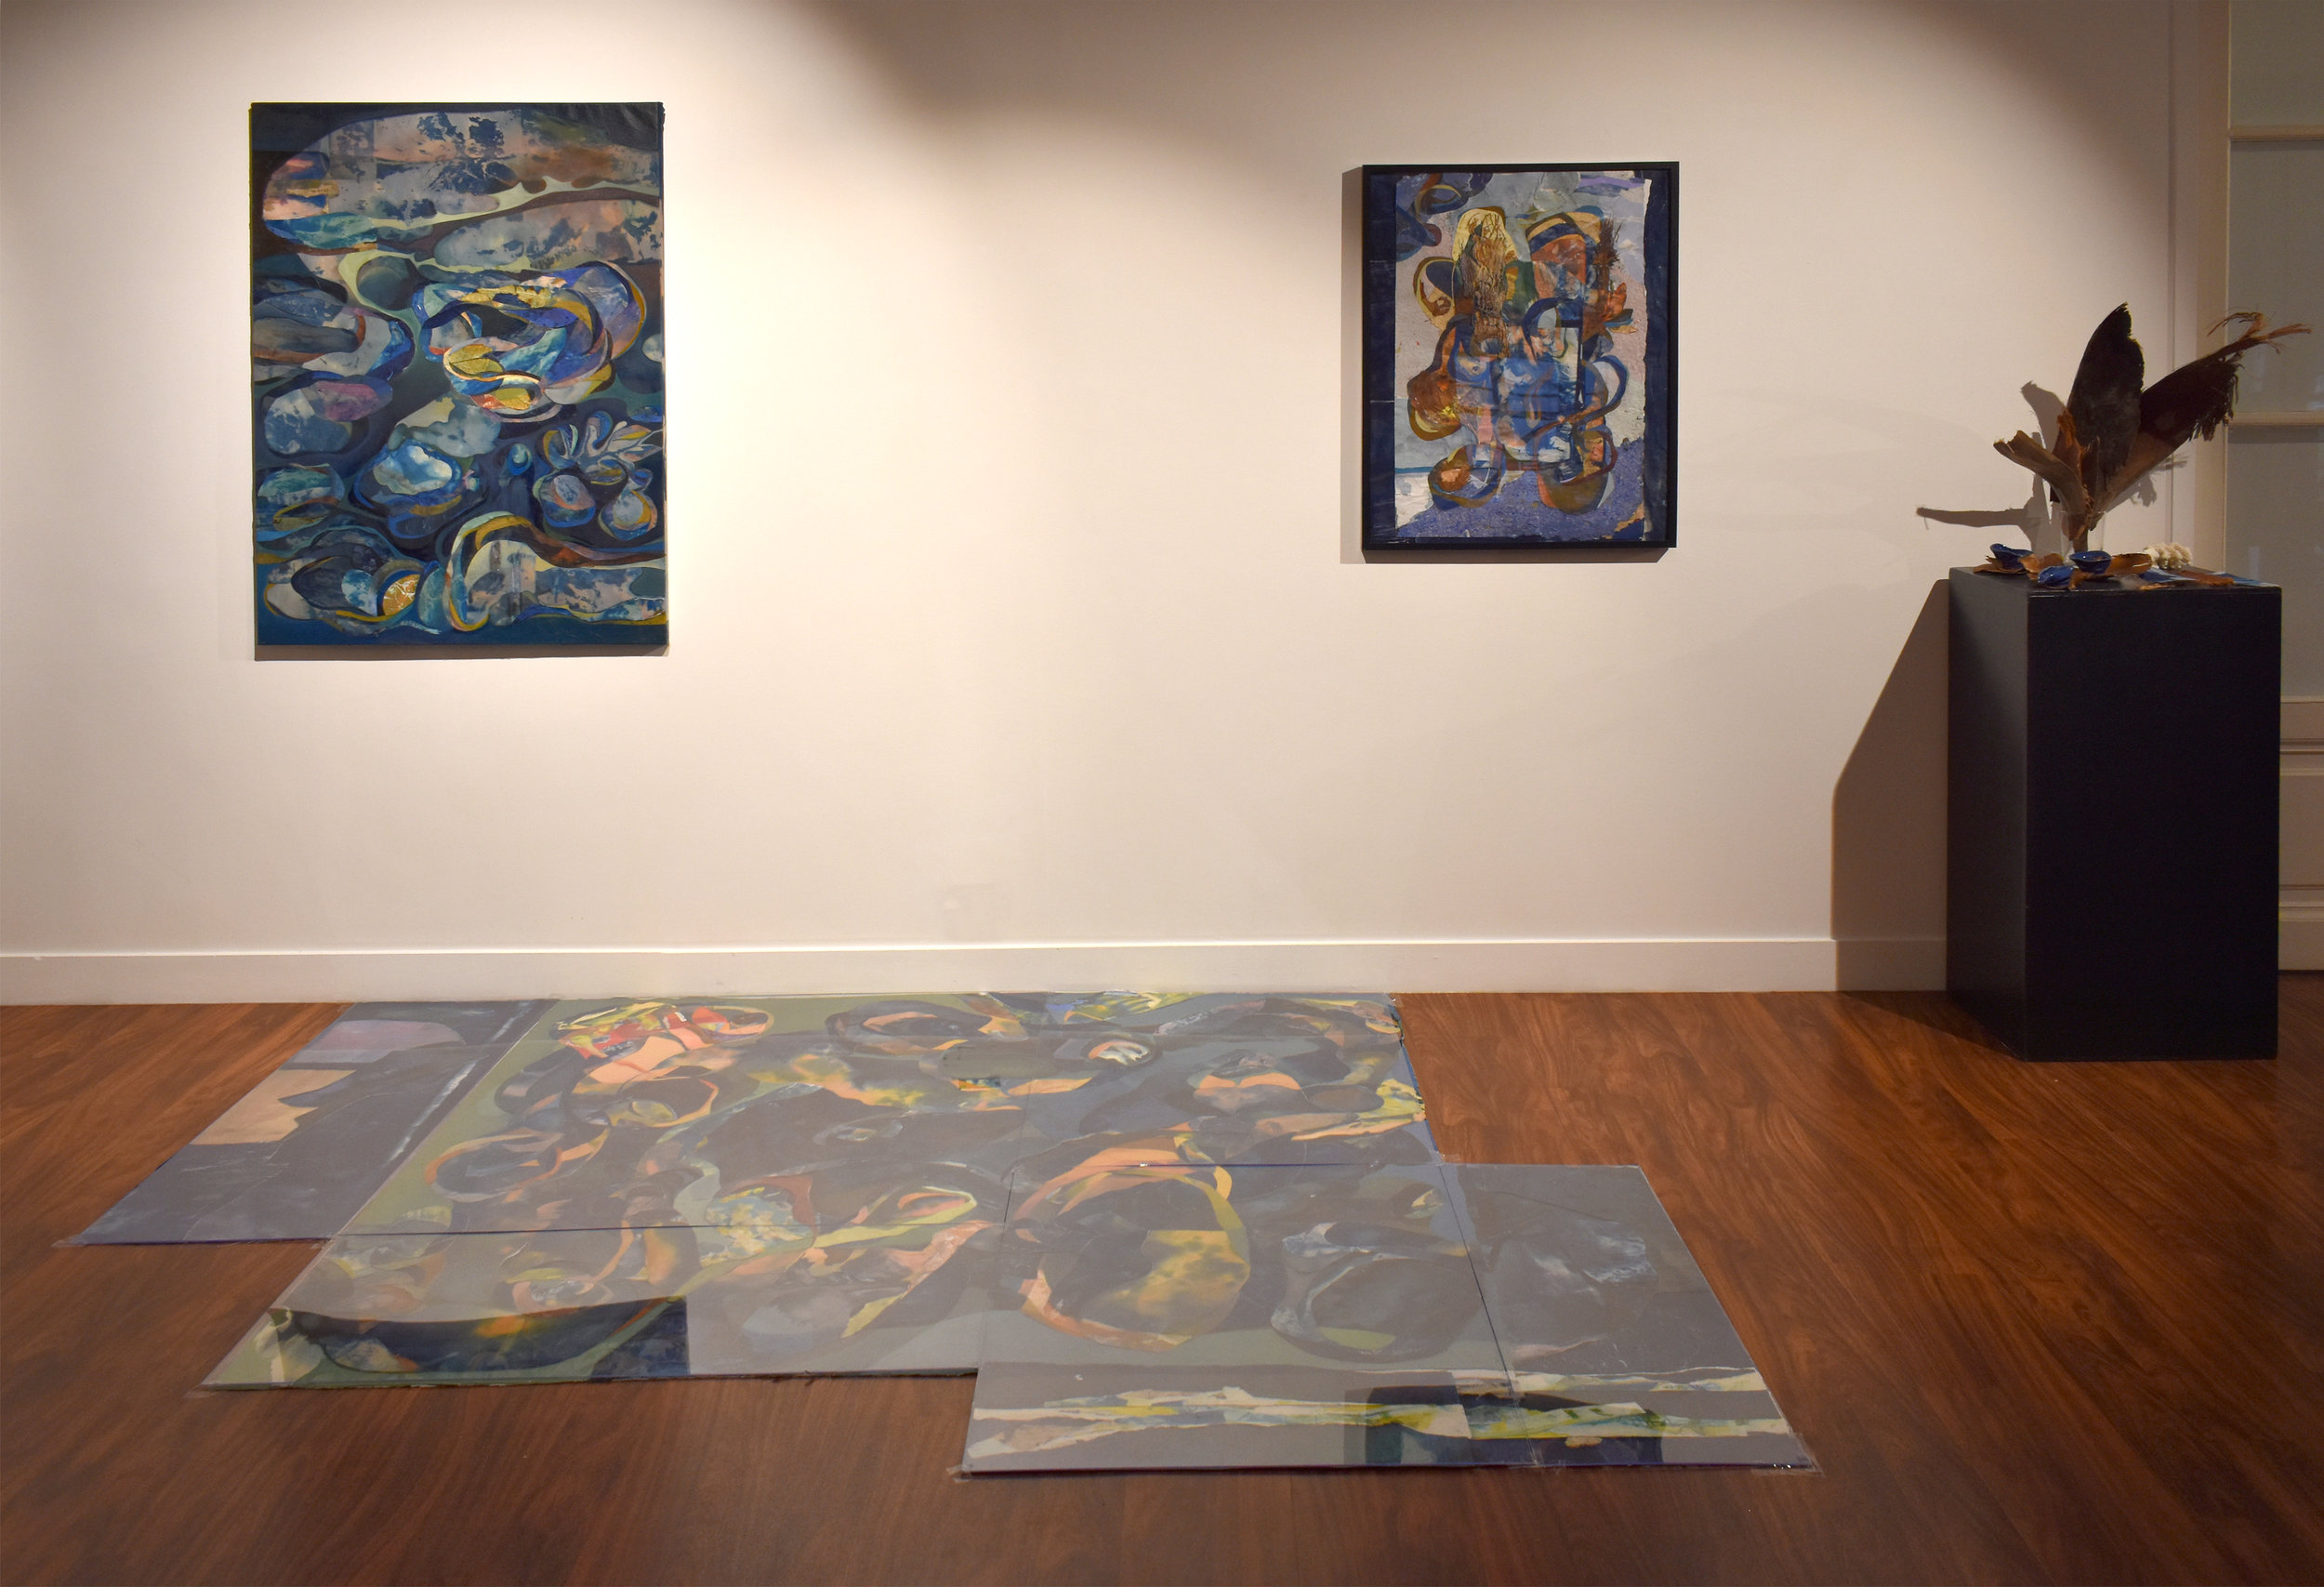 INSTALLATION:   Unfurled  as a floor installation   under plexiglass, along with  Looped  (left) and  Study for Unfurled  (right) and  Altar for Unfurled  : revealing the natural materials (palm tree bark, platycerium leaves, Icelandic rock, hand-made ceramic vessels, cyanotypes of the human cerebellum) that inspired/generated the painting. The choice of a floor composition presents the three works as a continuous, cyclical whole— a stage in the process of recycling paintings and natural materials. Floor composition inspired by Italian mineral marqueterie.